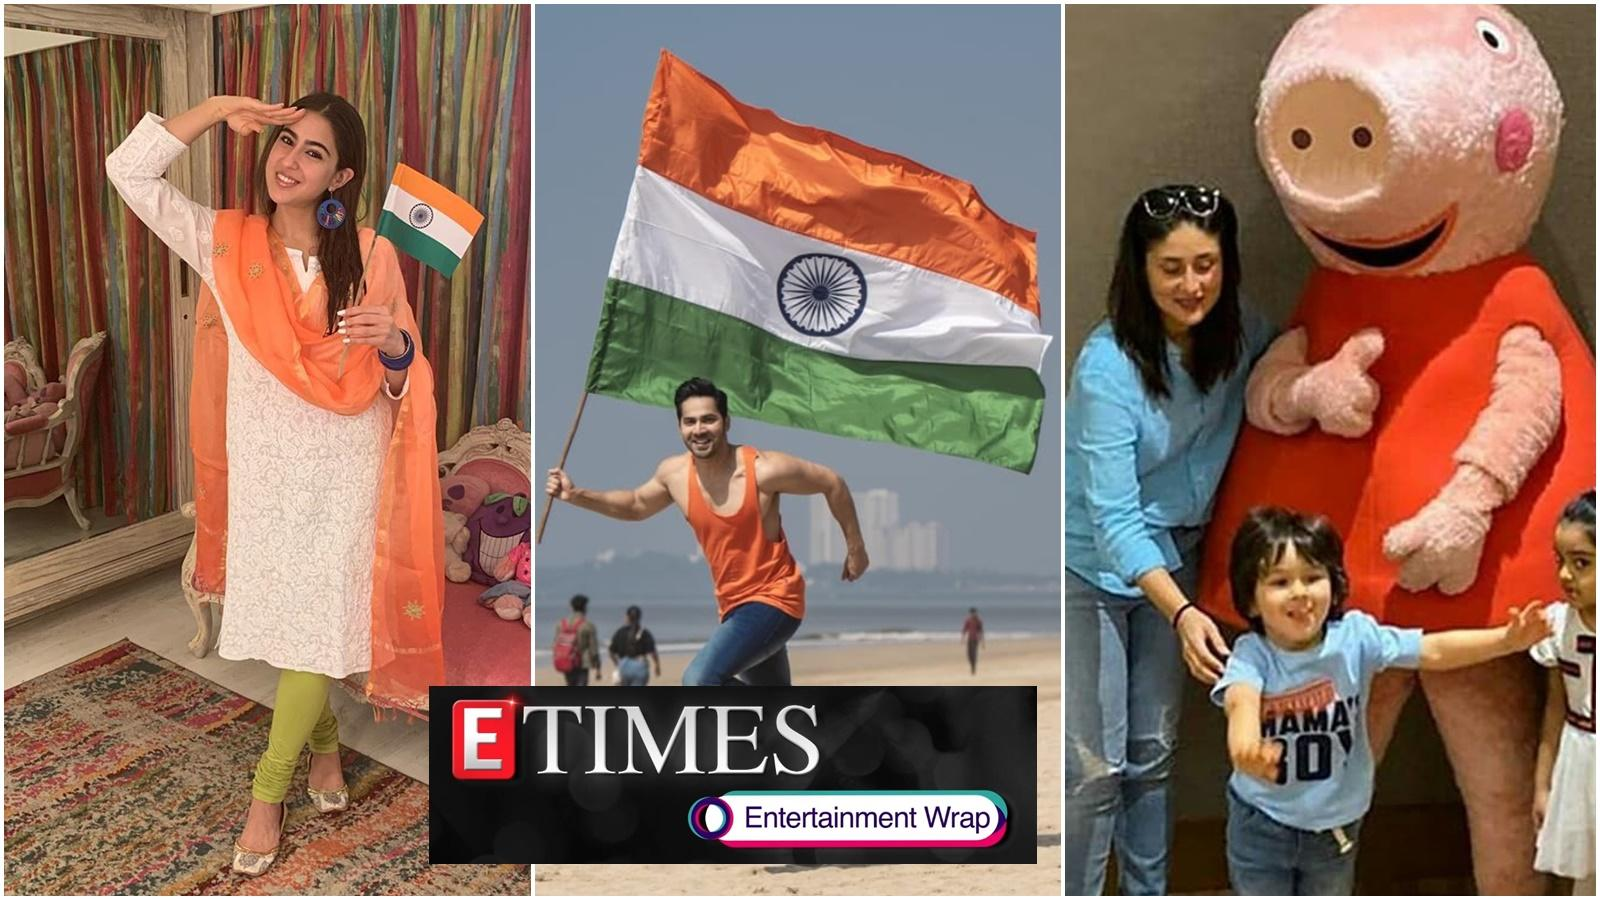 republic-day-2020-from-shah-rukh-khan-to-sara-ali-khan-bollywood-extends-greetings-taimur-ali-khan-gets-super-excited-after-meeting-peppa-pig-and-more